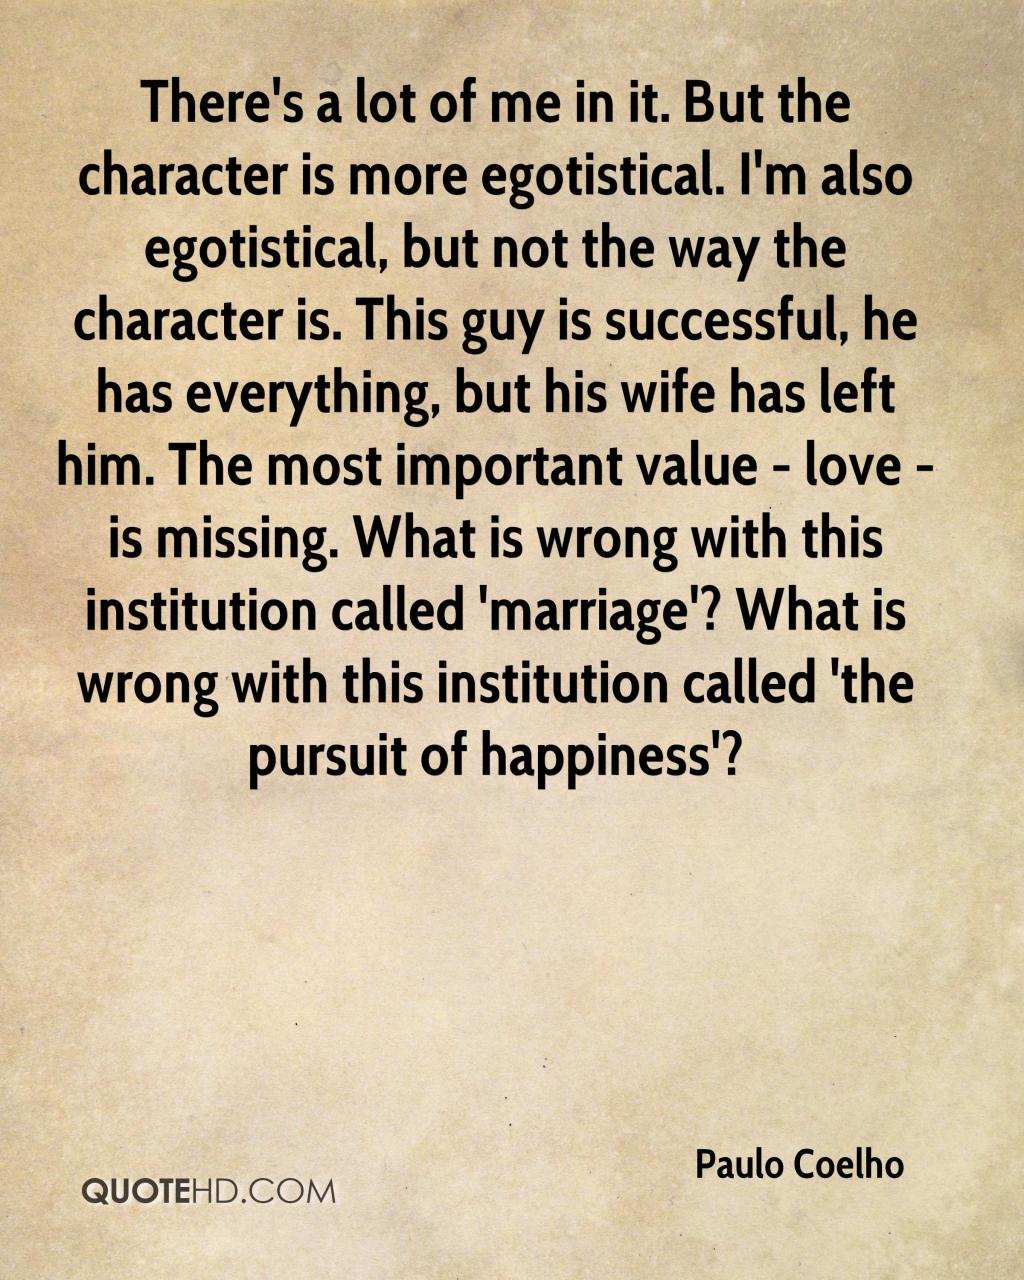 Paulo Coelho Marriage Quotes